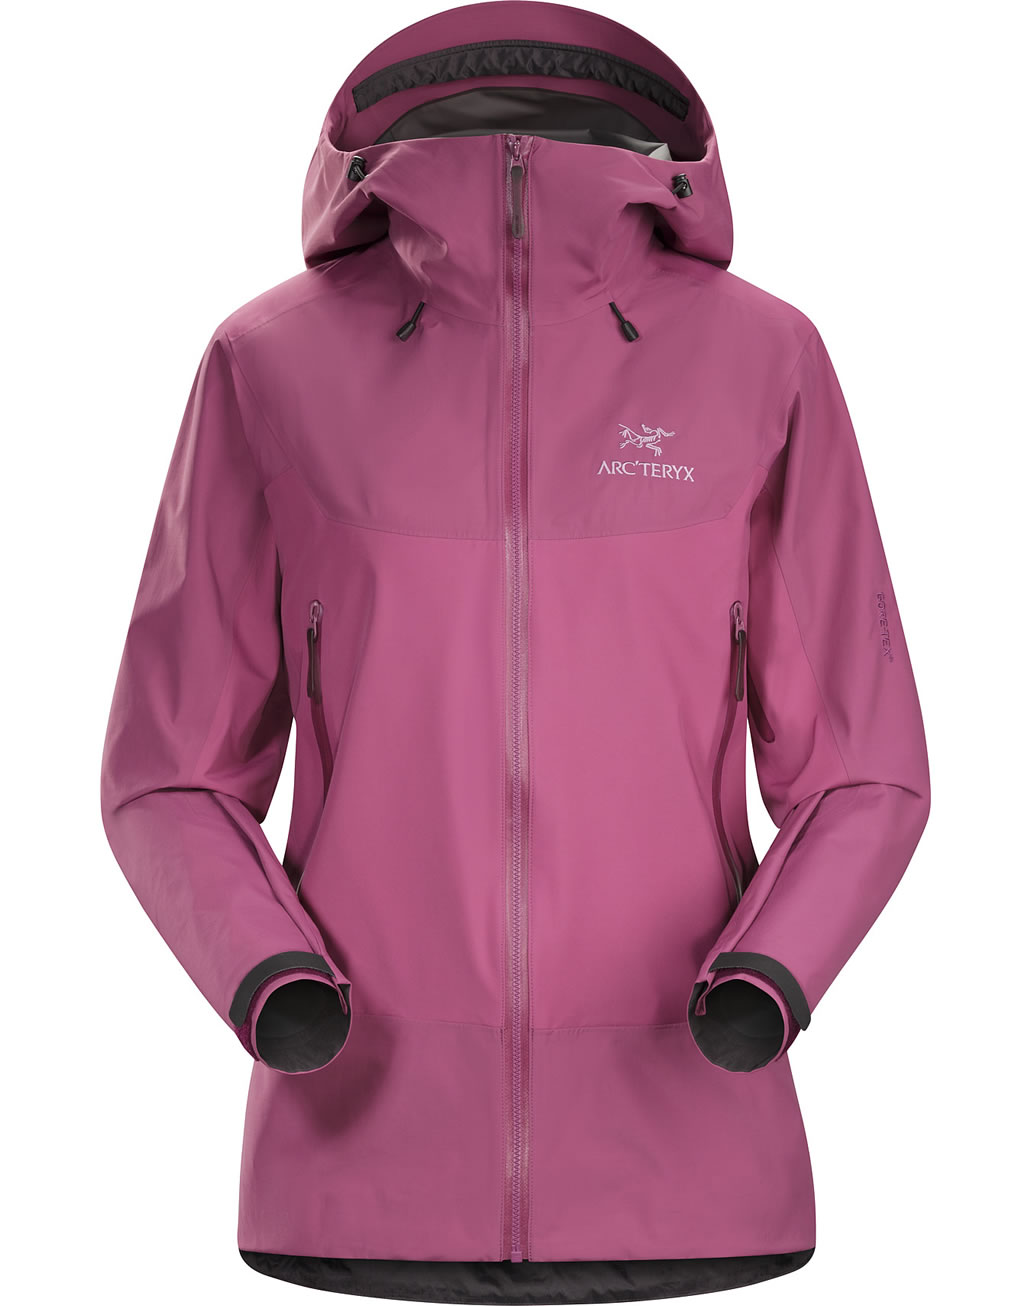 Arc'teryx Beta SL Hybrid Jacket for Women